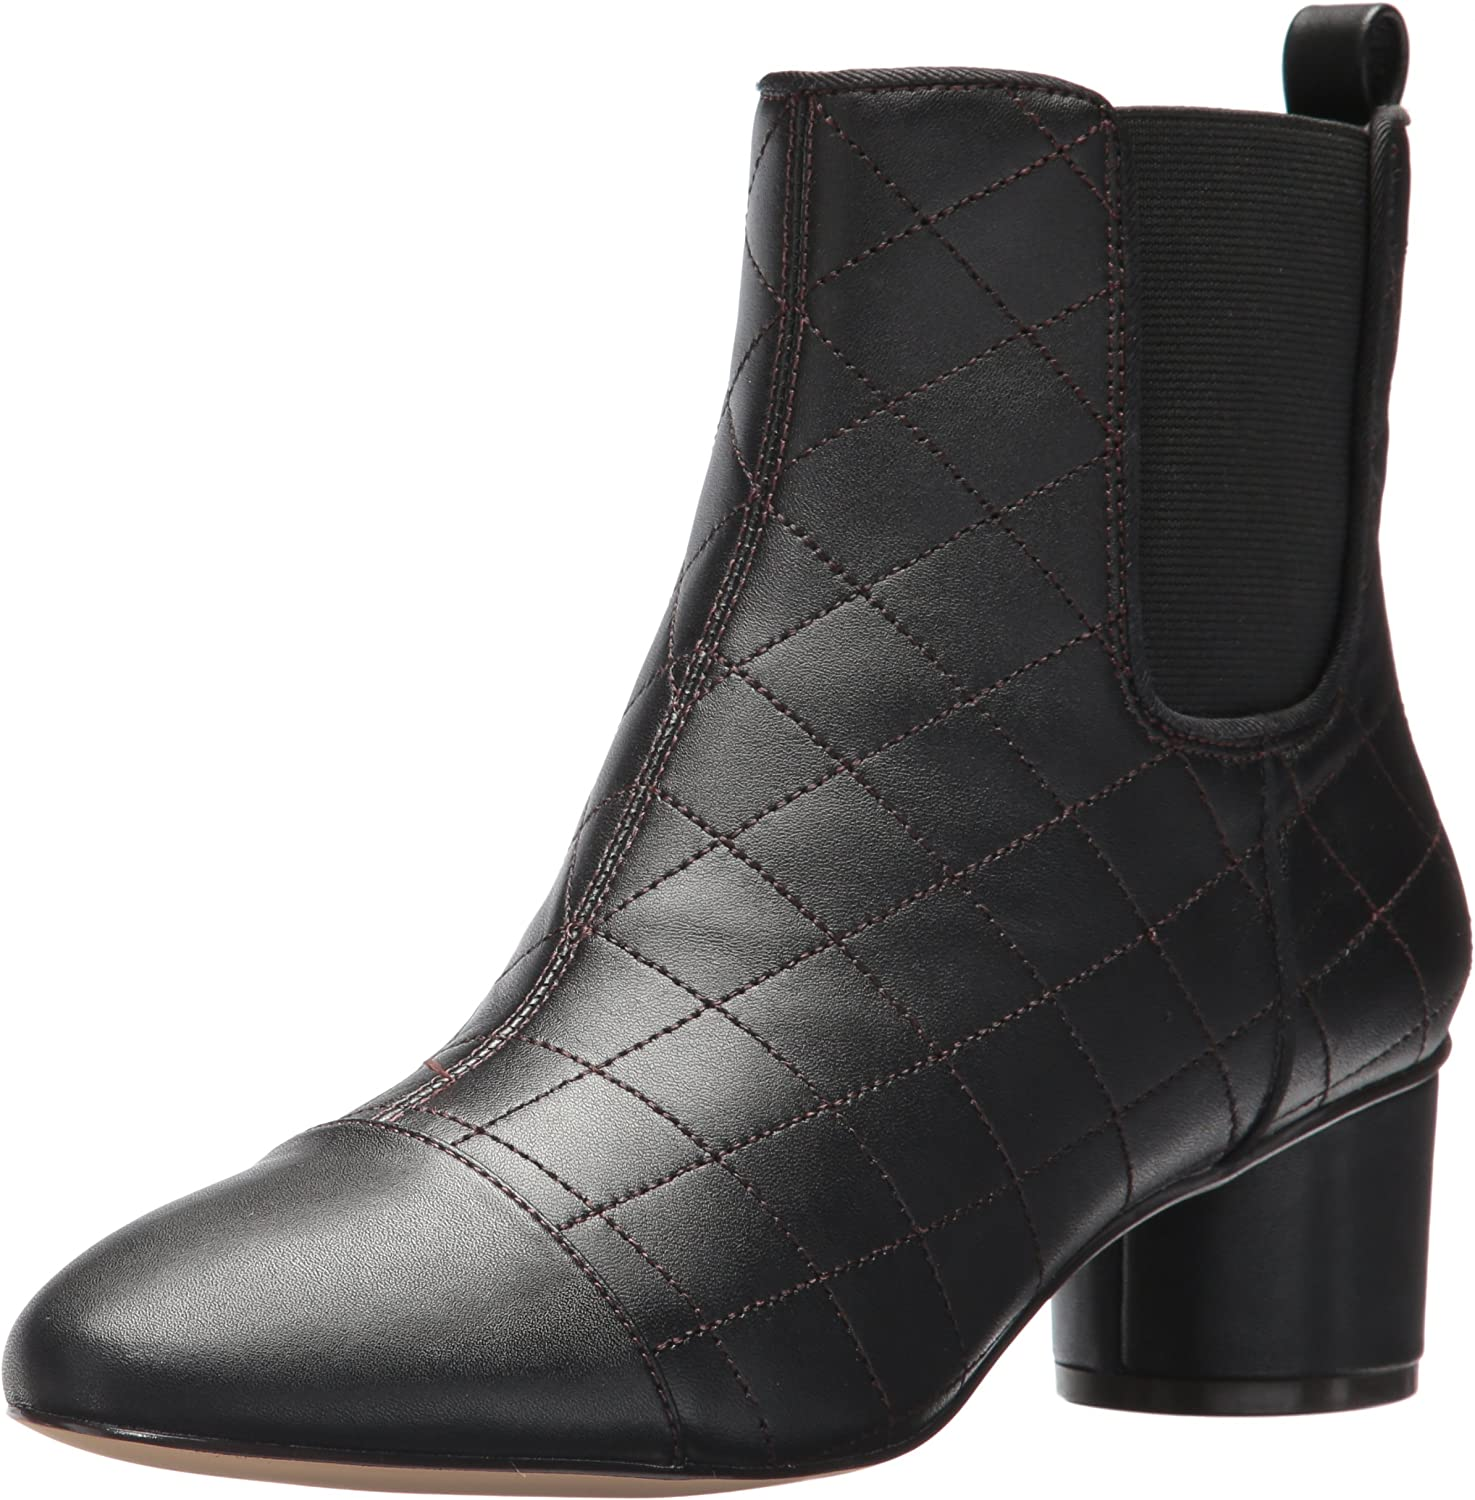 Nio West Woherrar Woherrar Woherrar Intercut Ankle Boot  den klassiska stilen